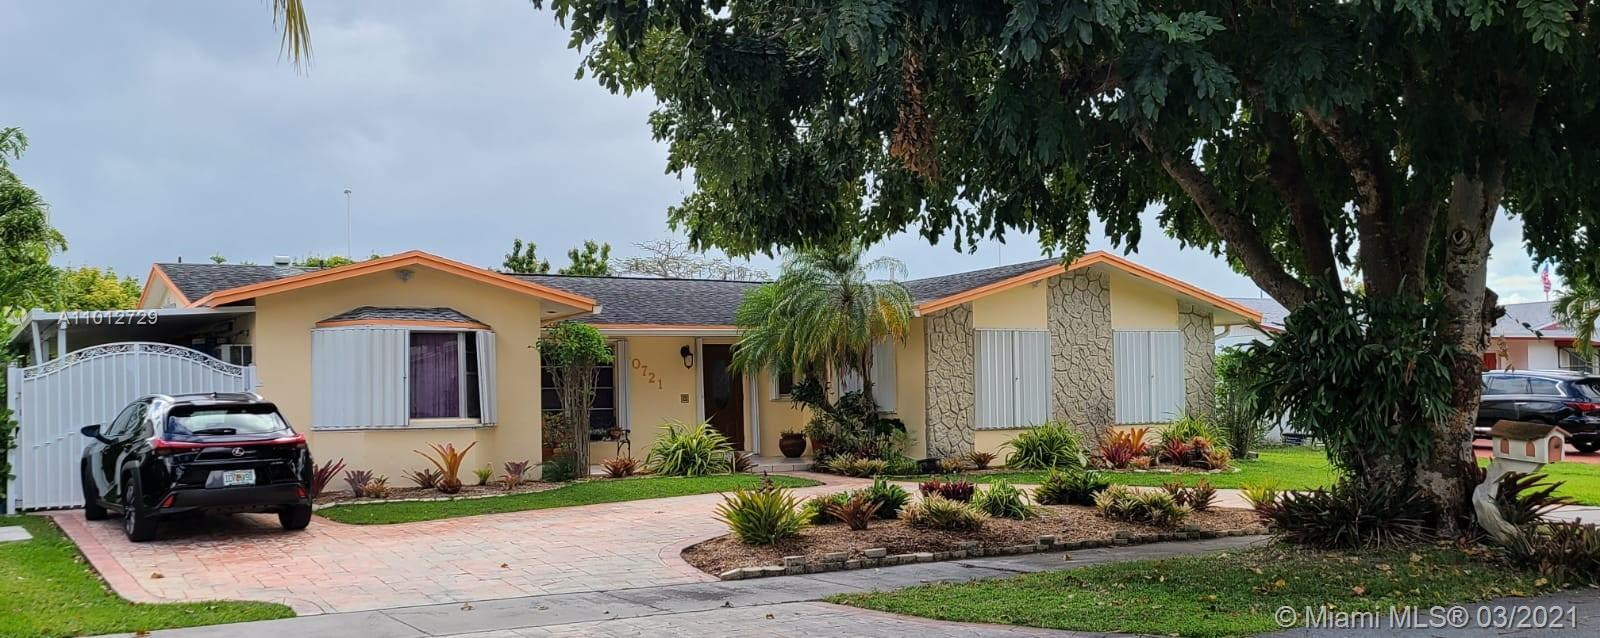 10721 SW 120th Ave  For Sale A11012729, FL